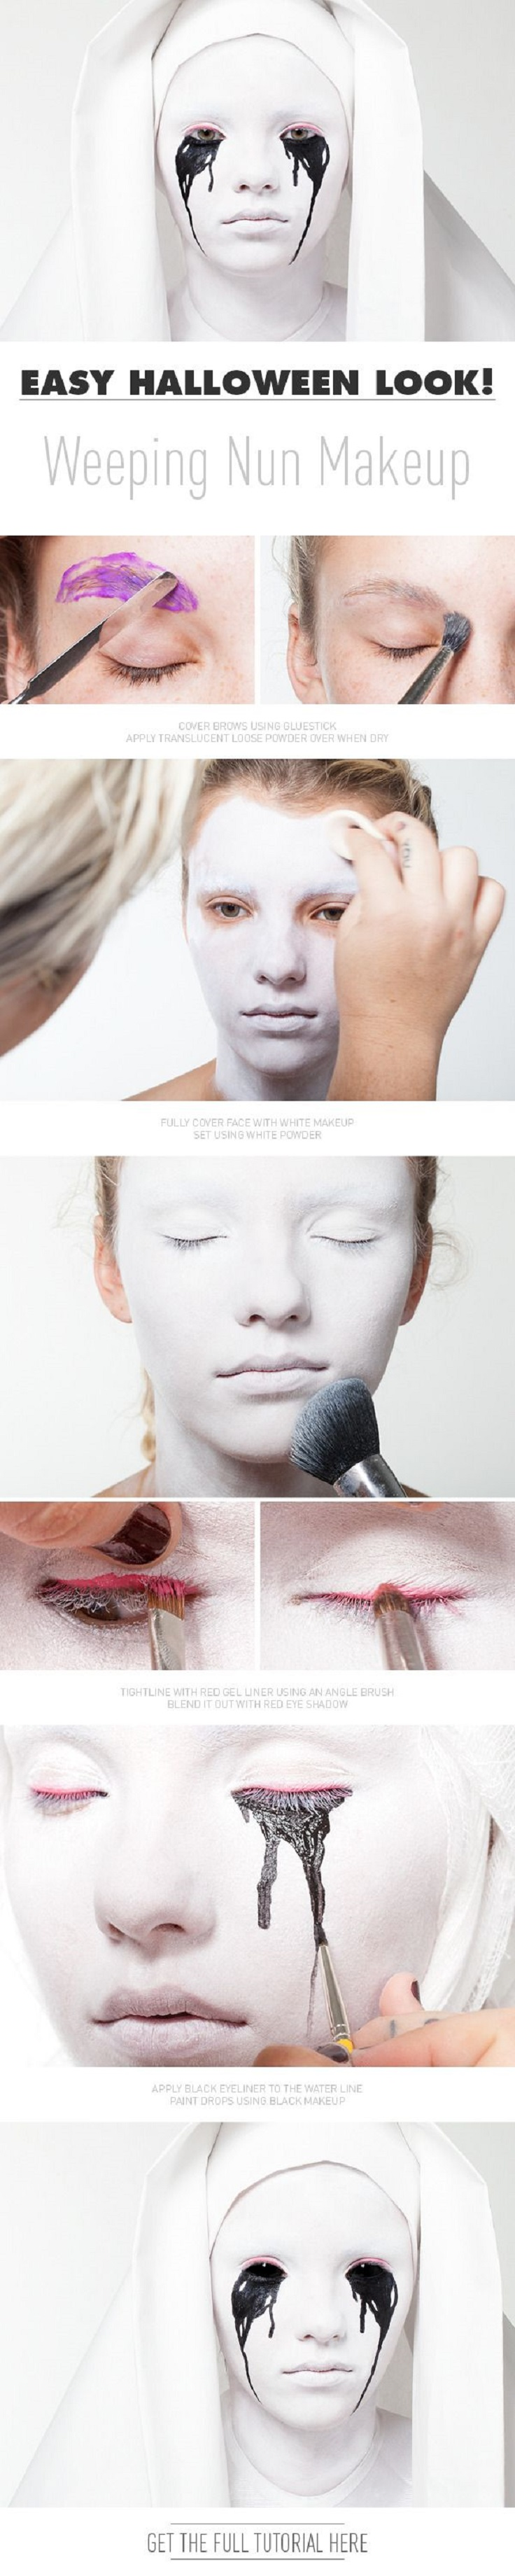 Top 10 Last Minute Makeup Tutorials For Halloween